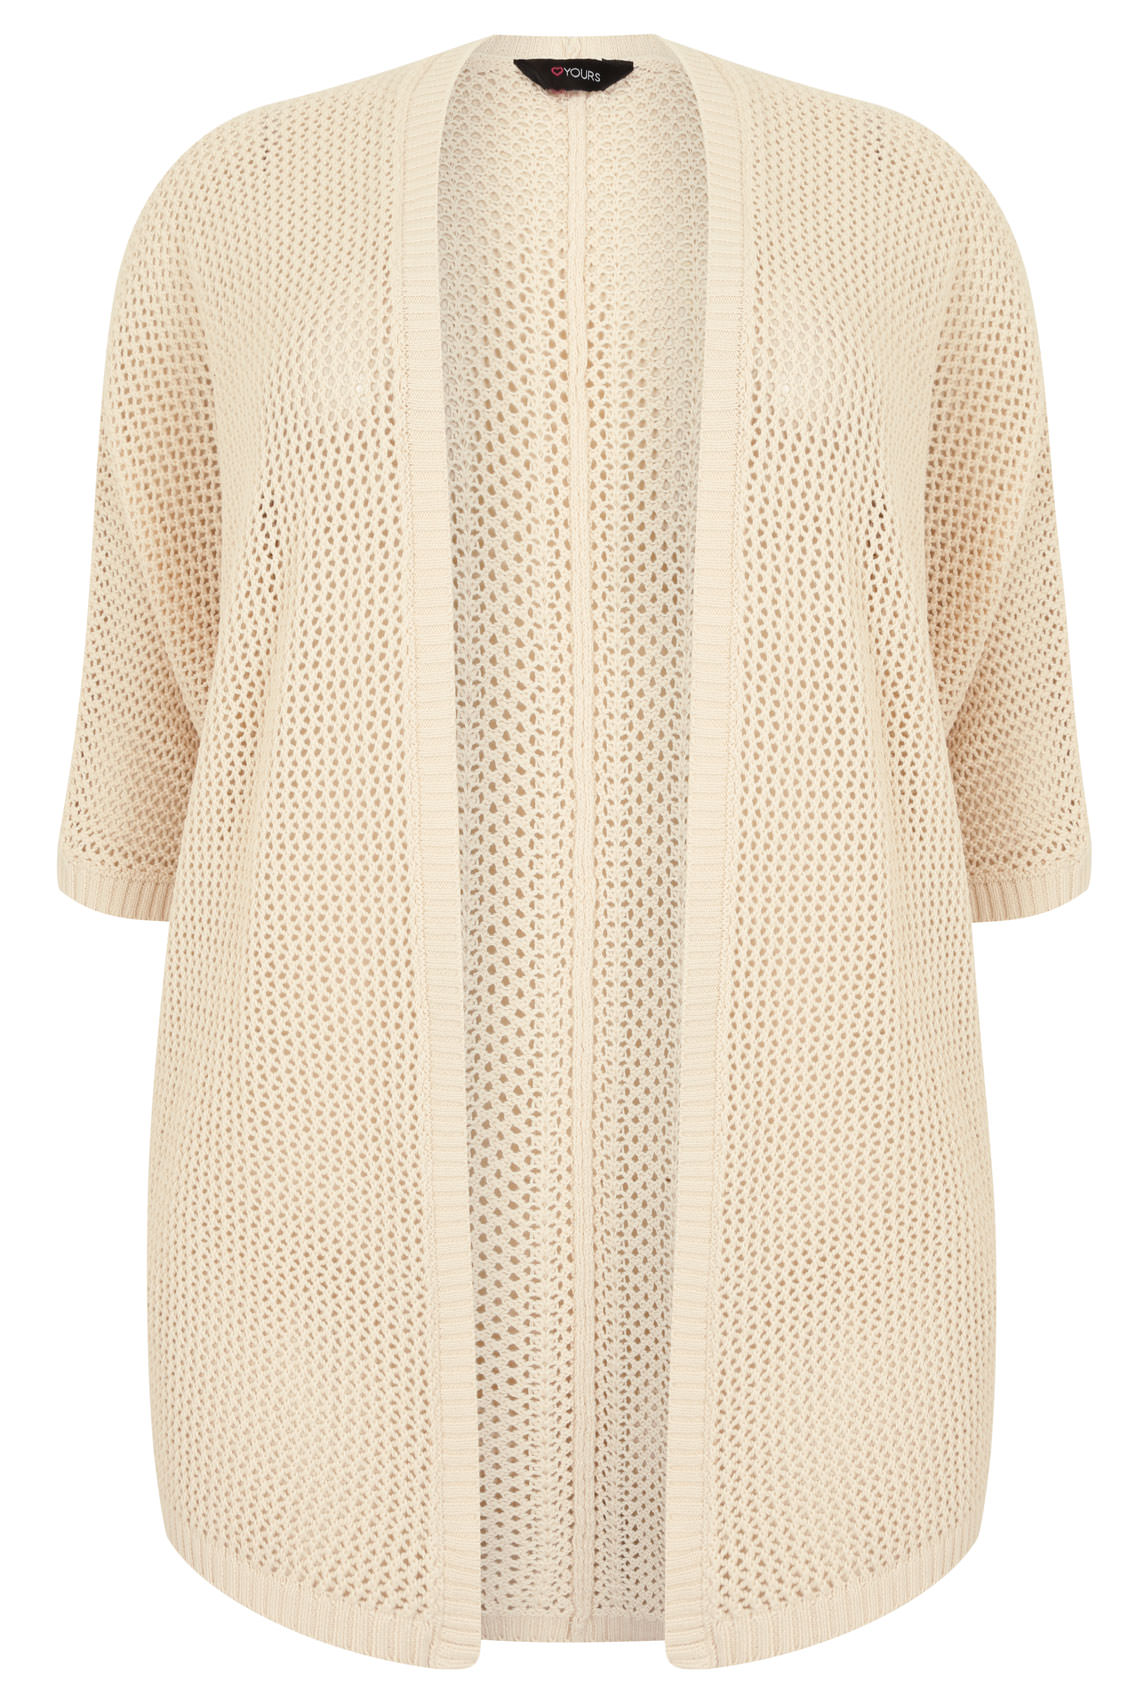 Cream Open Knit Cocoon Cardigan With Half Sleeves, Plus size 16 to 36